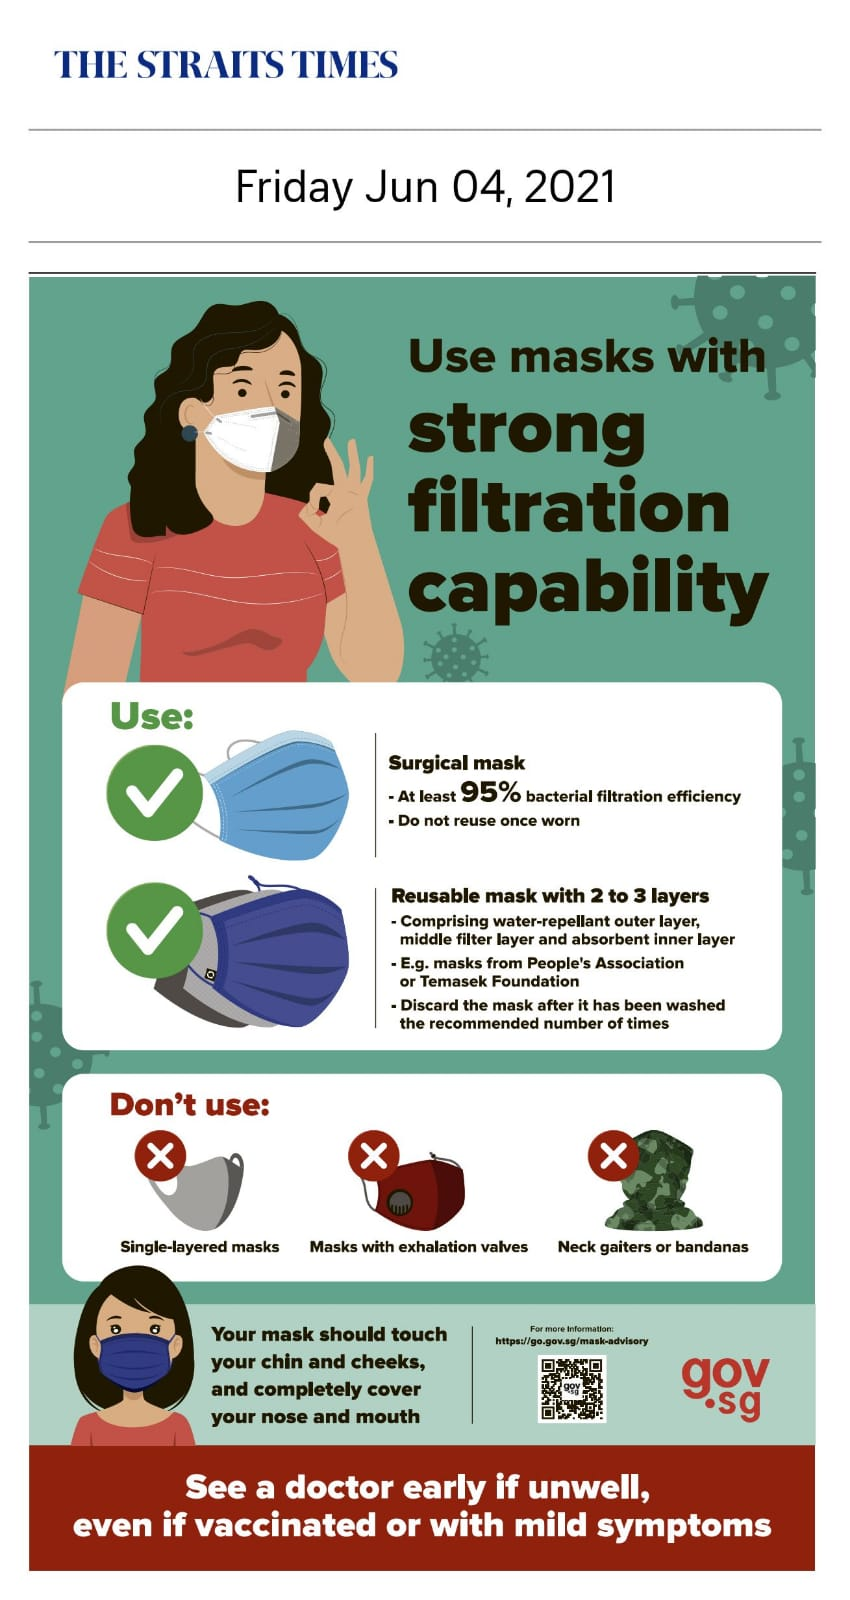 Use masks with strong filtration capability - Published in The Straits Times June, 04 2021